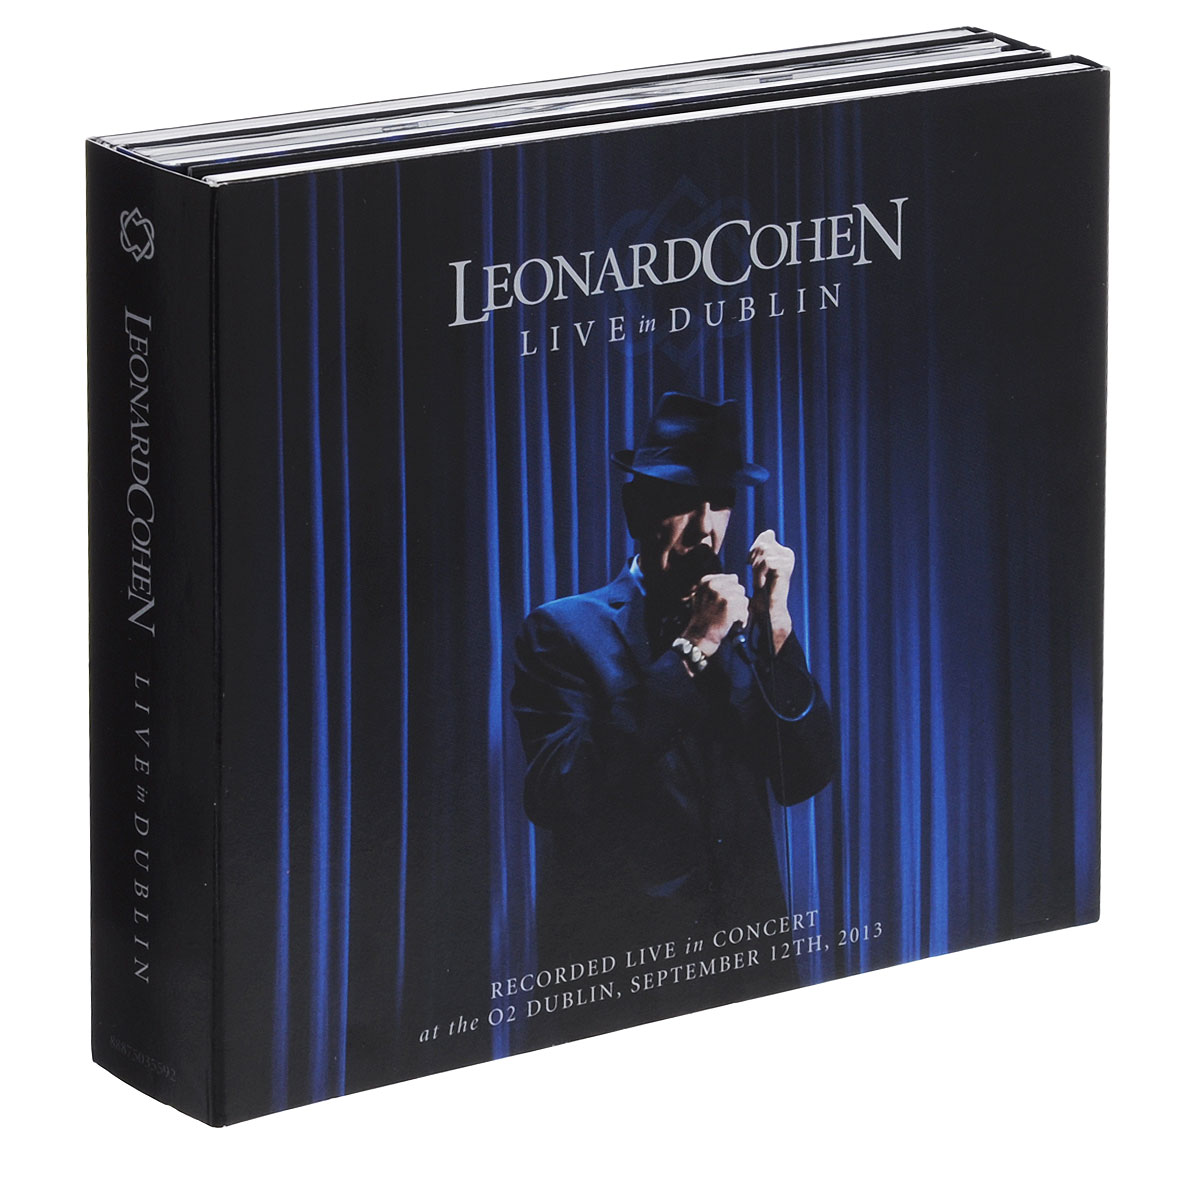 Леонард Коэн Leonard Cohen. Live In Dublin (3 CD + Blu-ray) реджина спектор regina spektor live in london cd blu ray